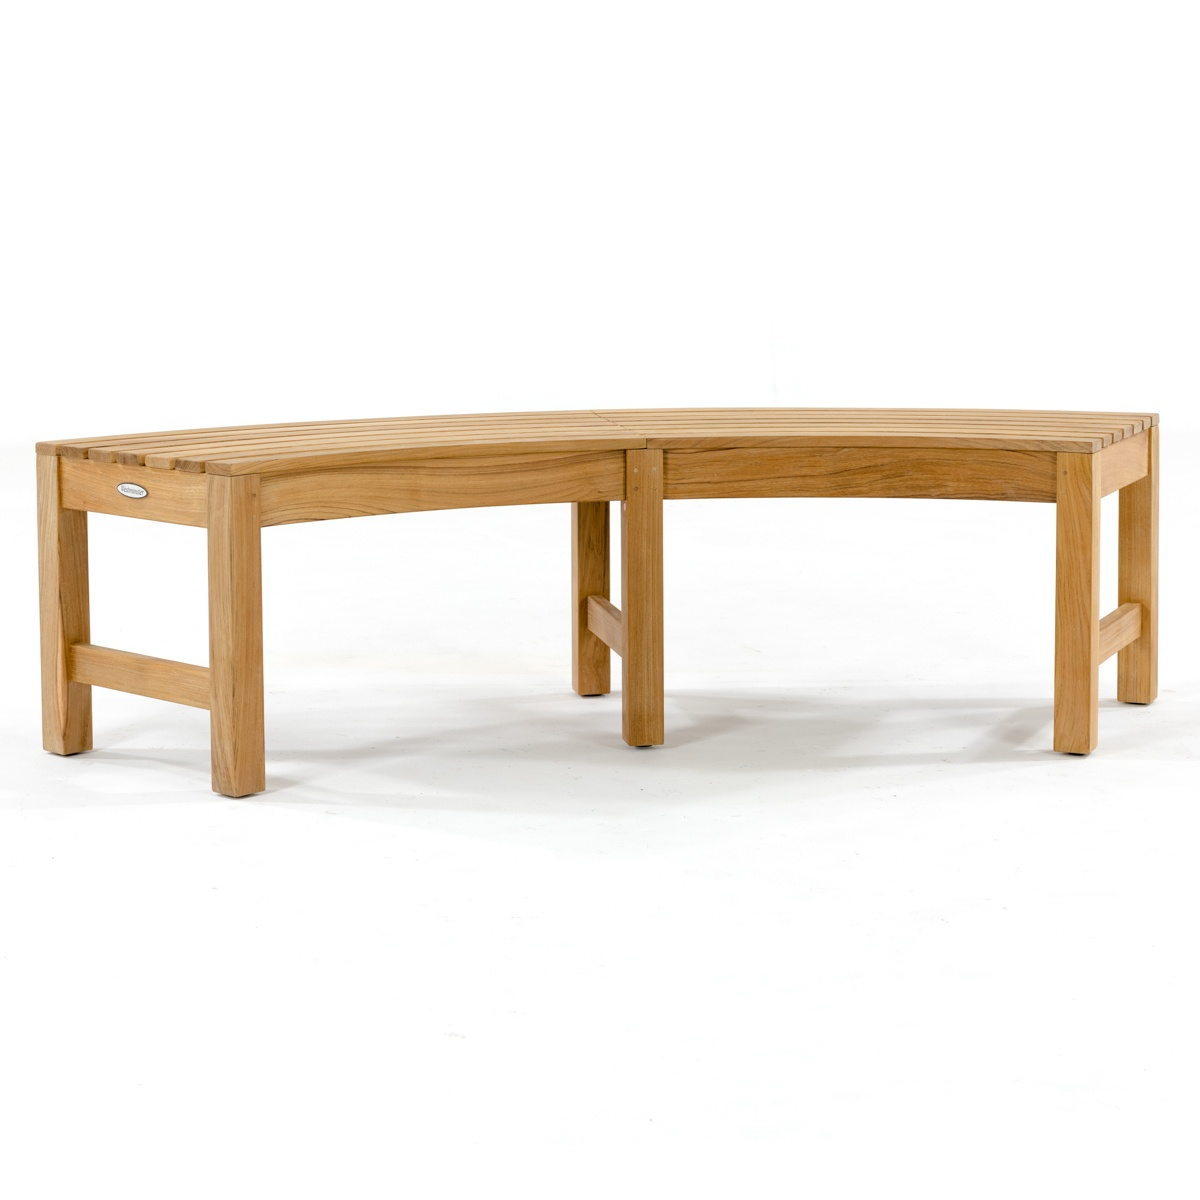 Buckingham Teak Backless Curved Round Bench Westminster